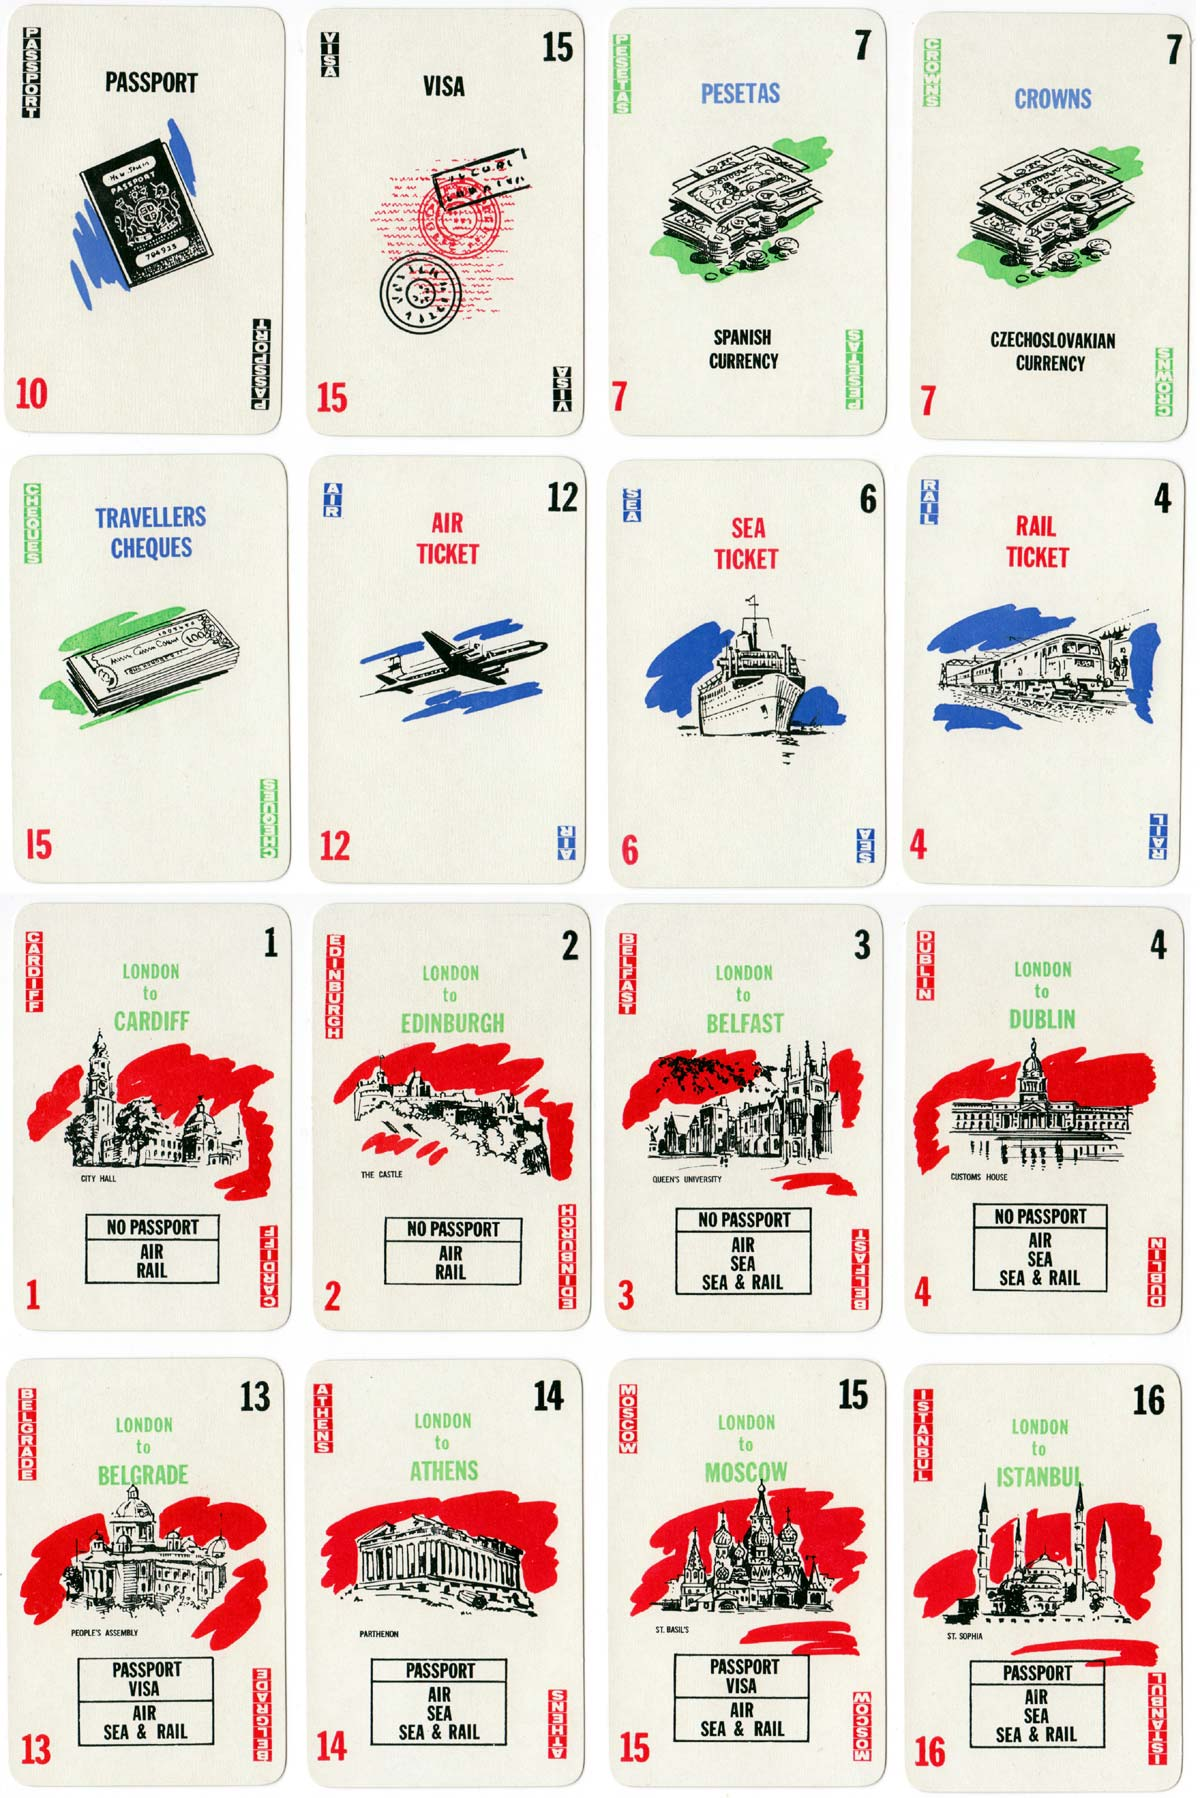 Travel Agent card game designed by Martin A. Foley and manufactured by Thomas de la Rue & Co Ltd, c.1960